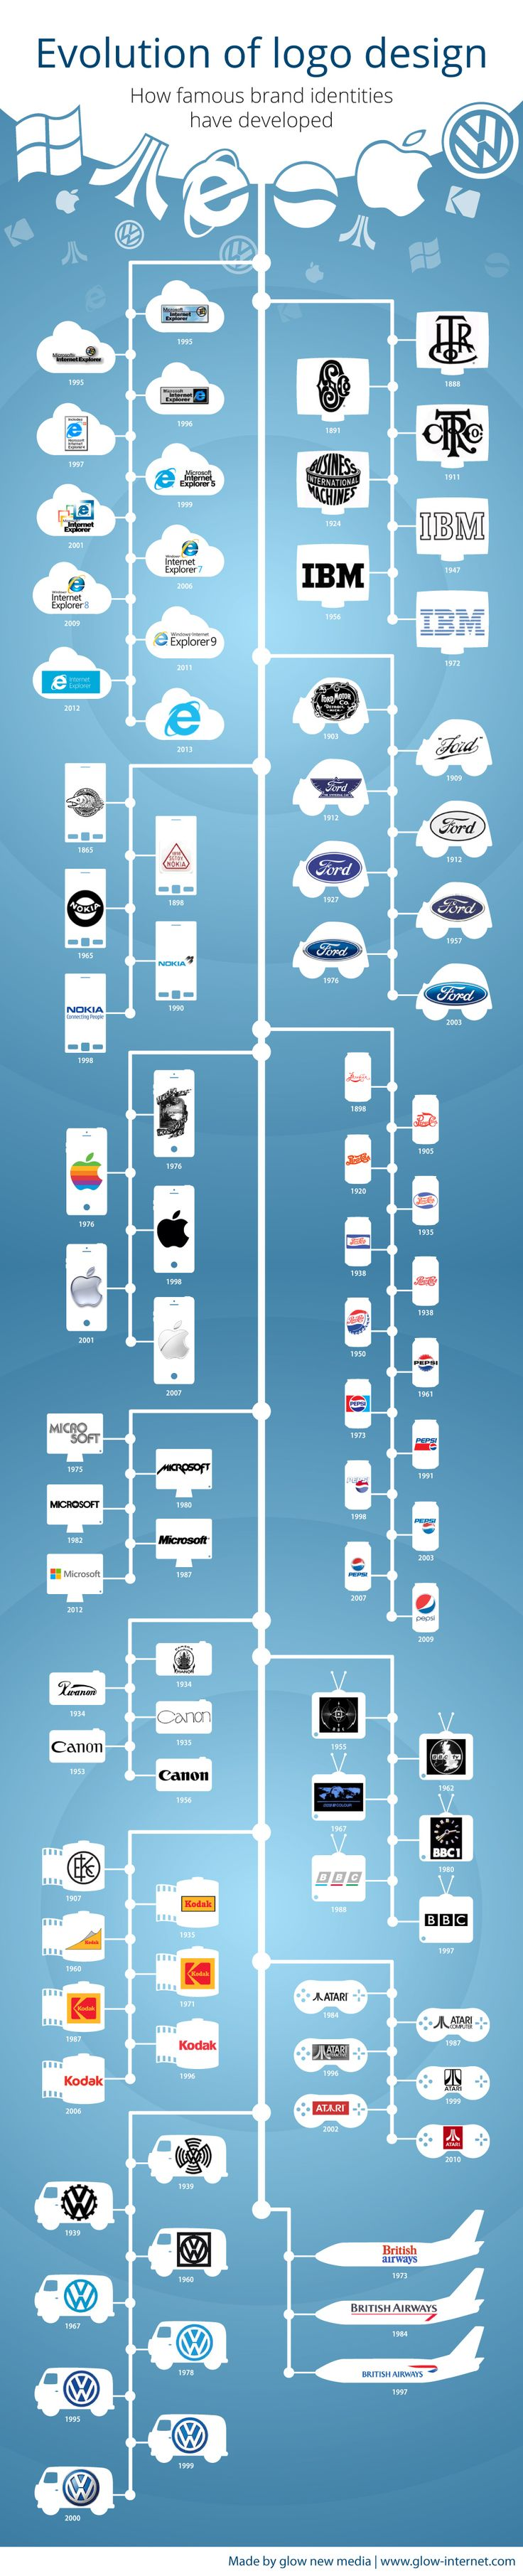 How logos from different brands changed through the years